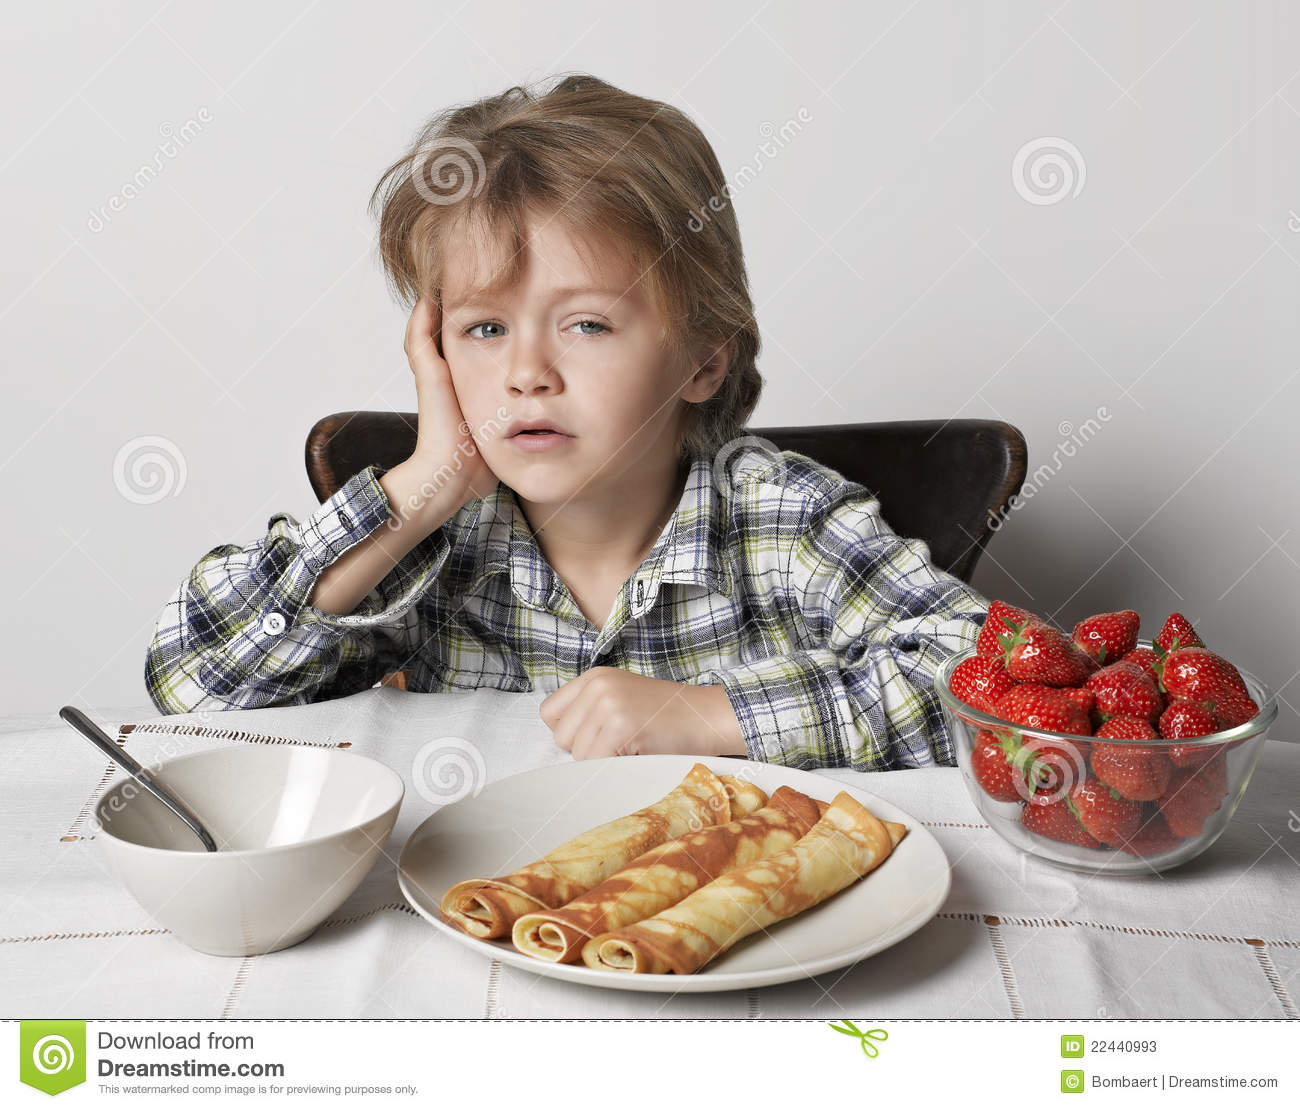 A child does not eat breakfast - what to do and what to cook 6